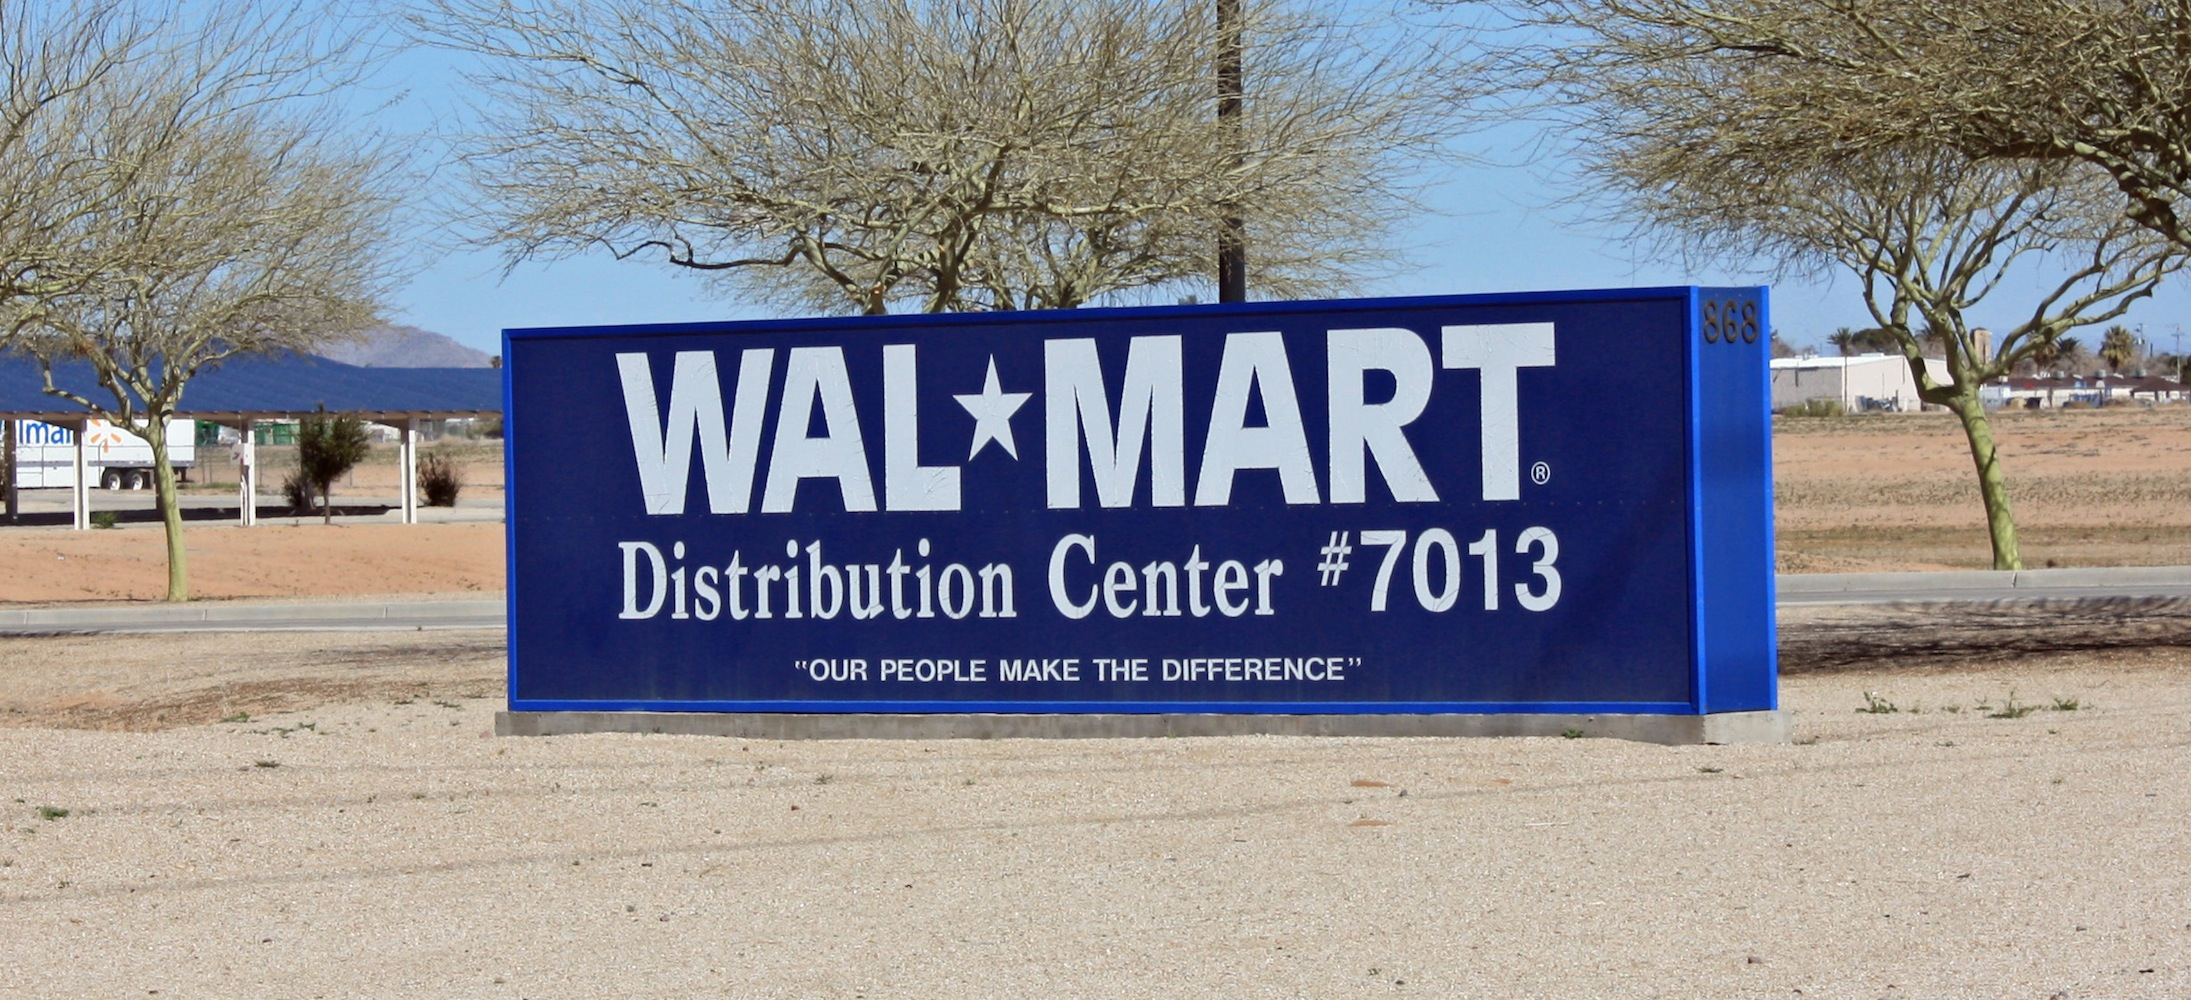 Wal Mart Regional Distribution Center Casa Grande Az